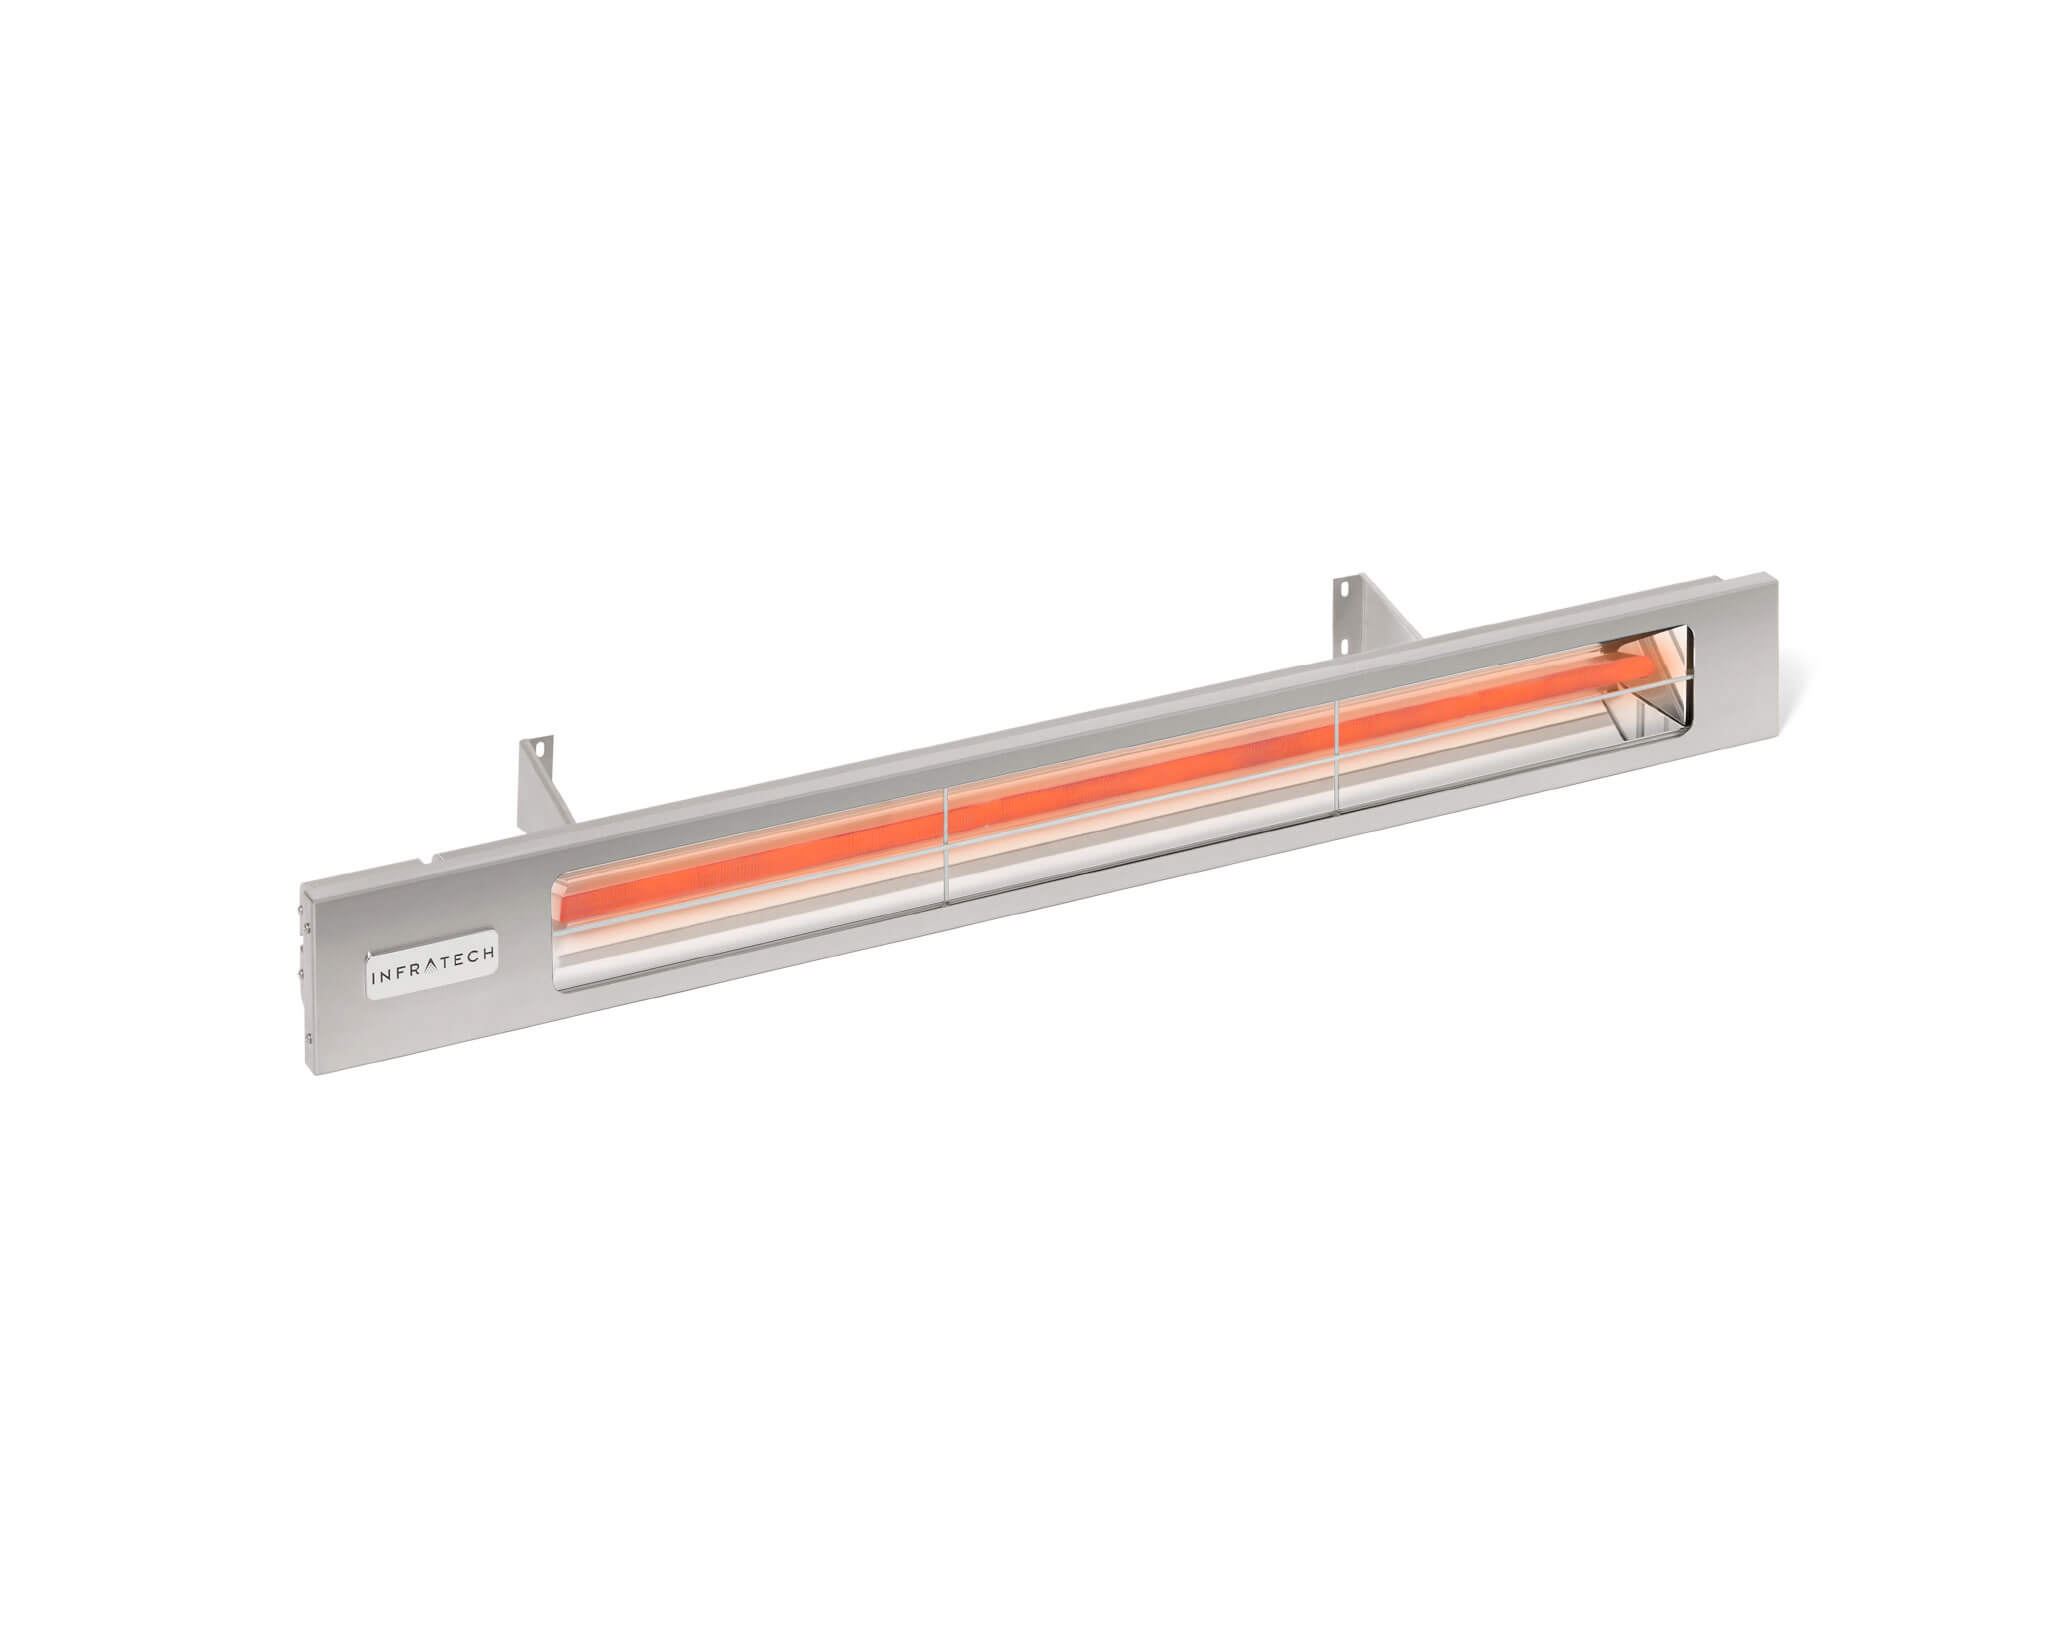 SL-Series Slimline Single Element Heaters